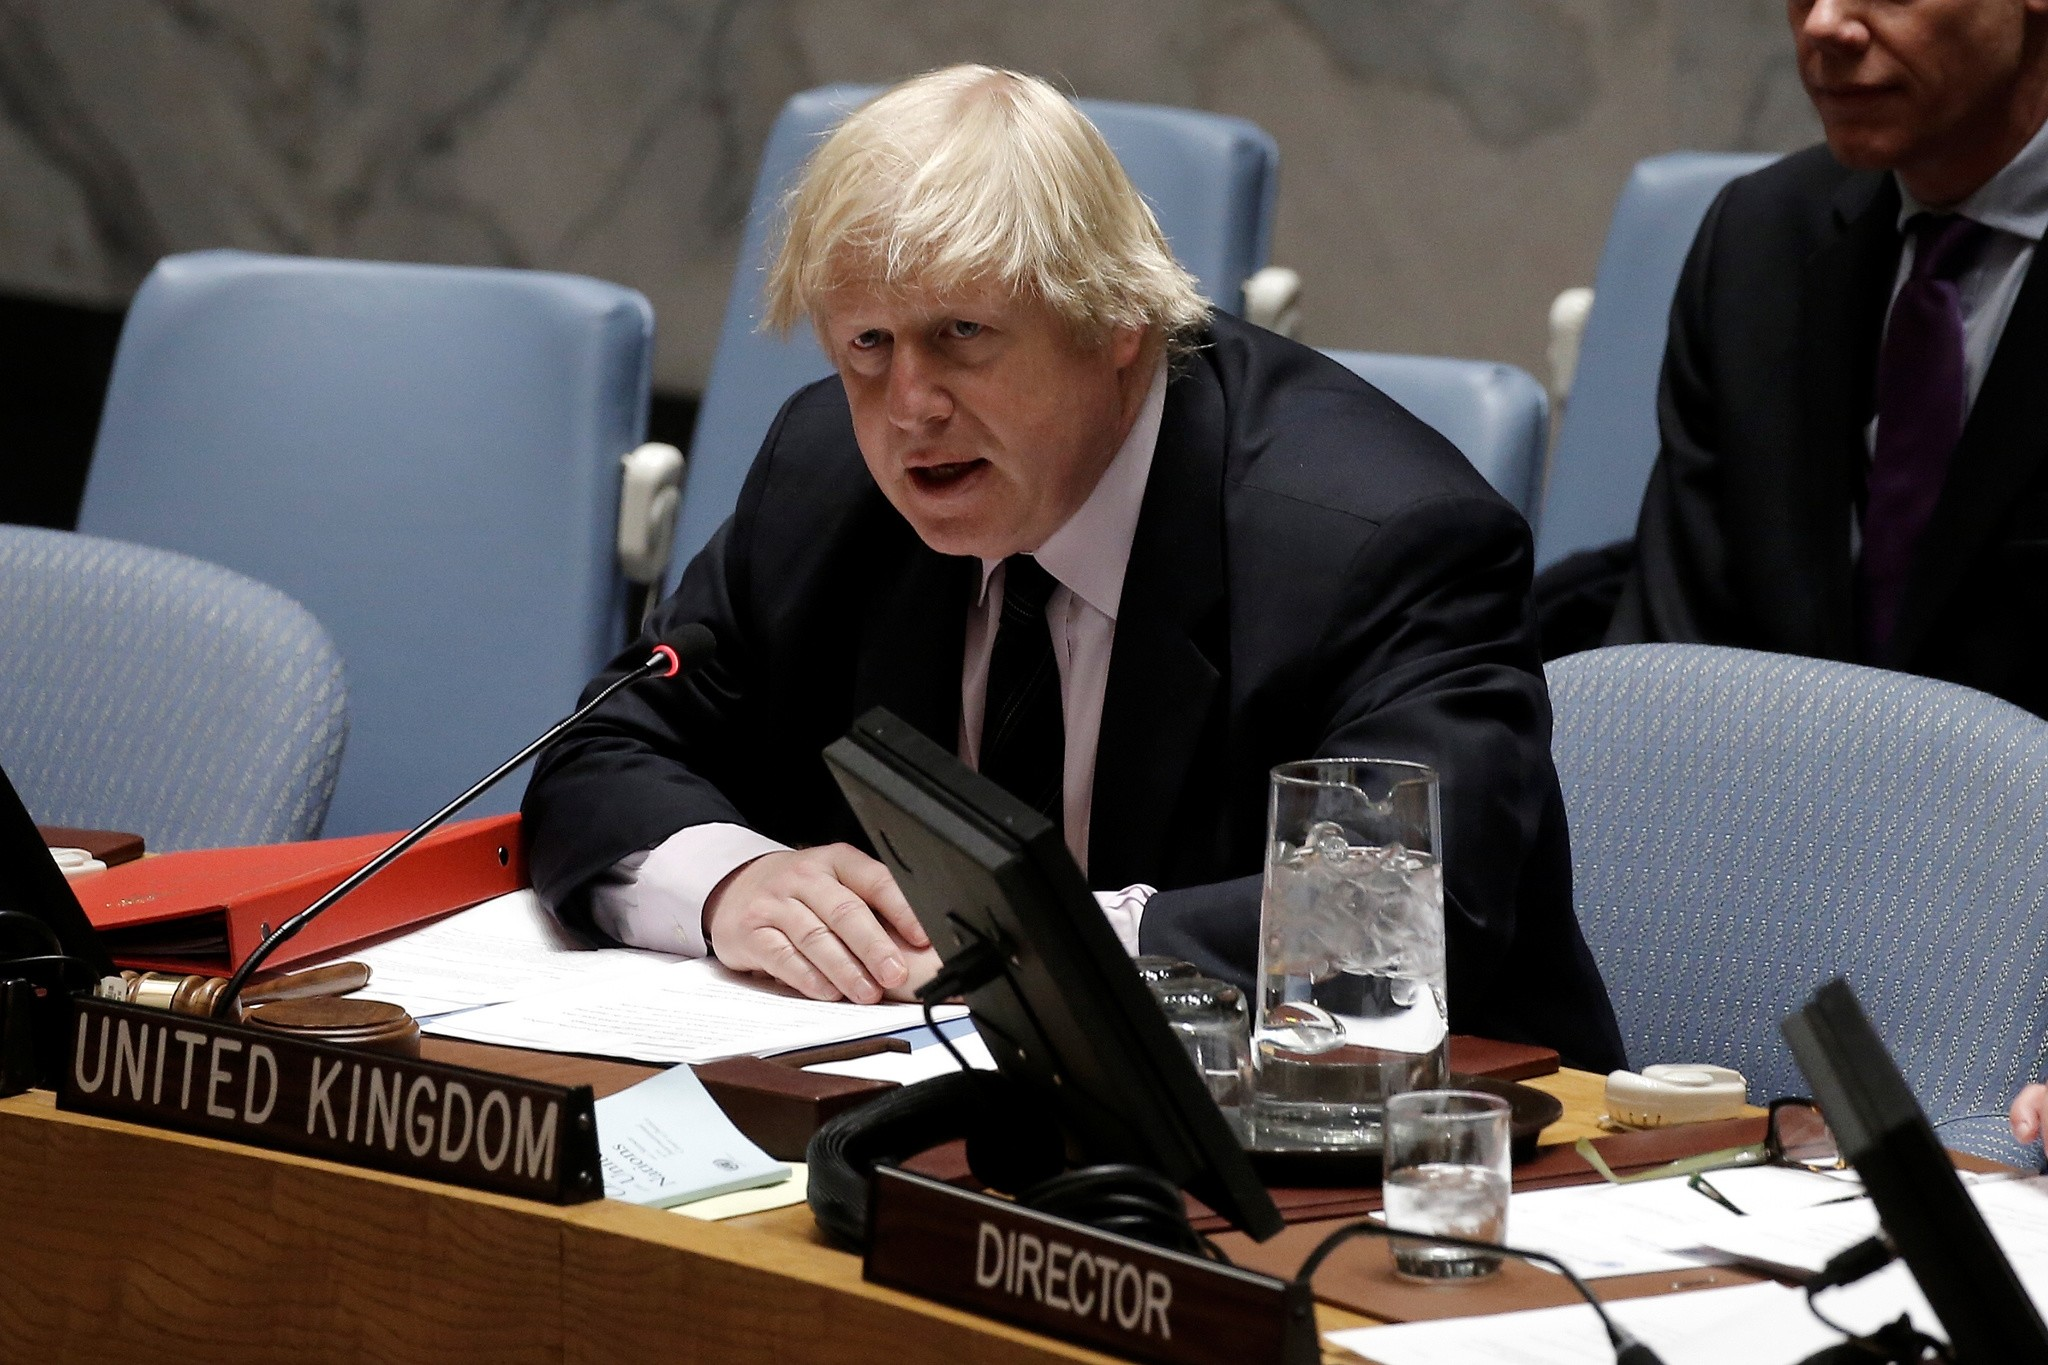 British Foreign Secretary Boris Johnson speaks at U.N. headquarters in New York, U.S., March 23, 2017. (Reuters Photo)